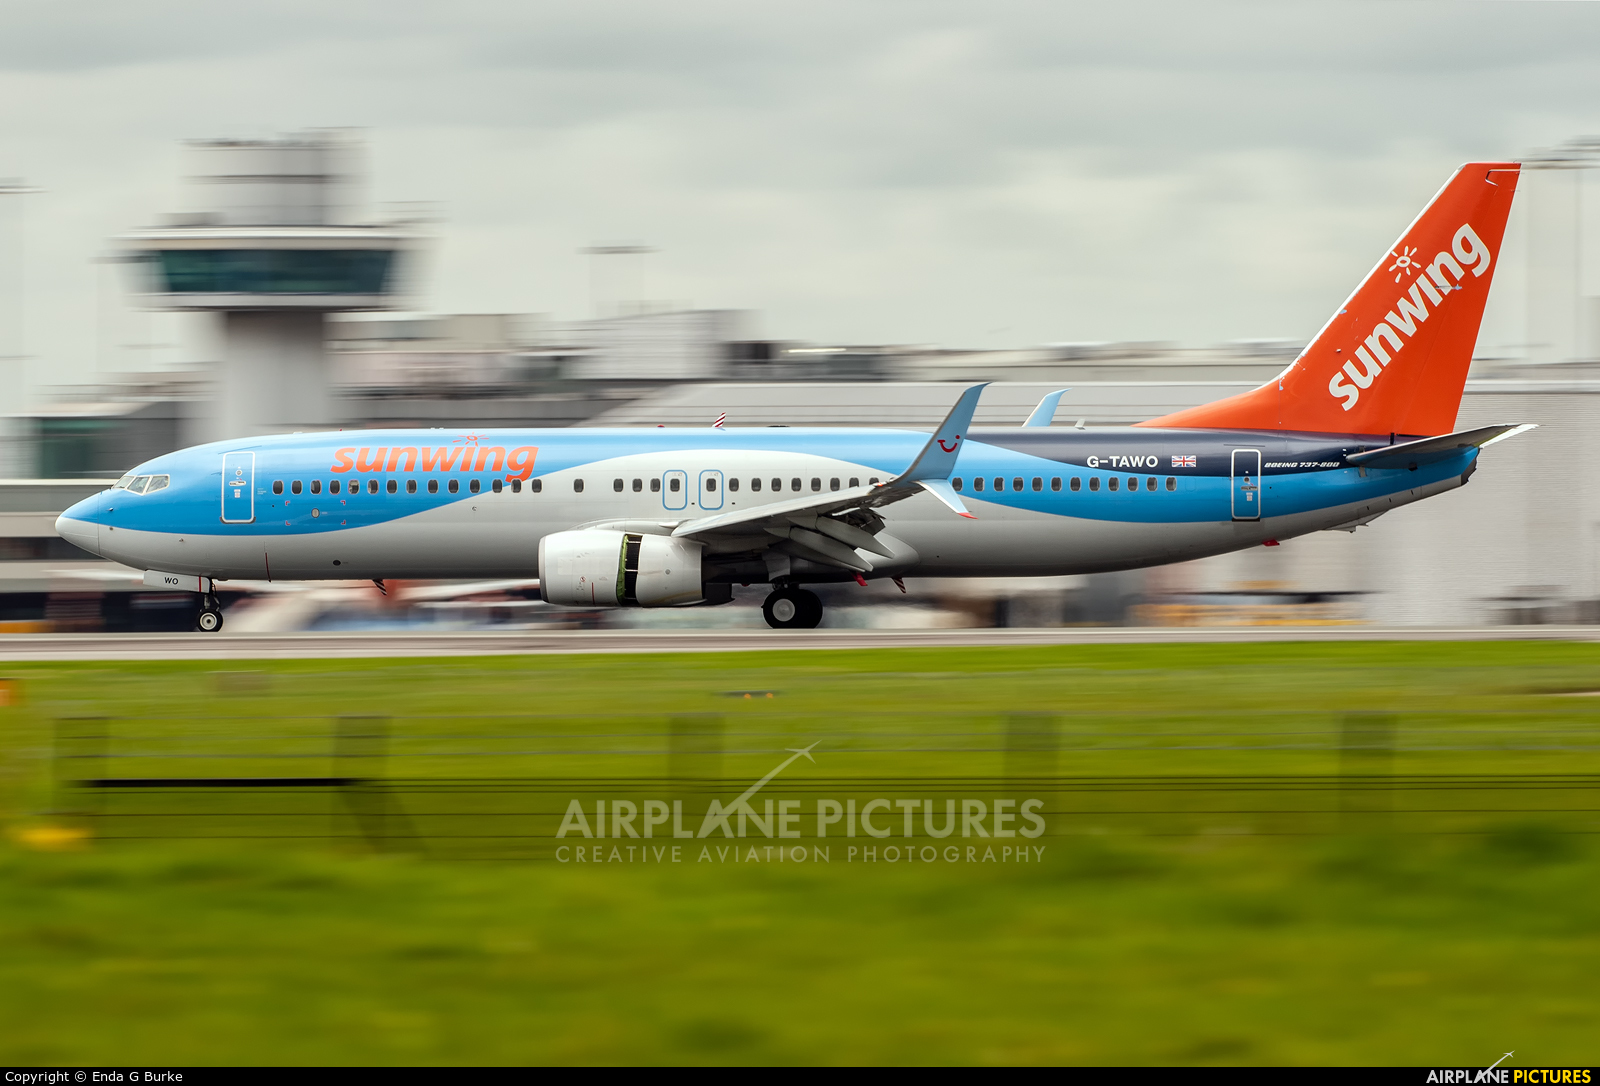 TUI Airways G-TAWO aircraft at Manchester